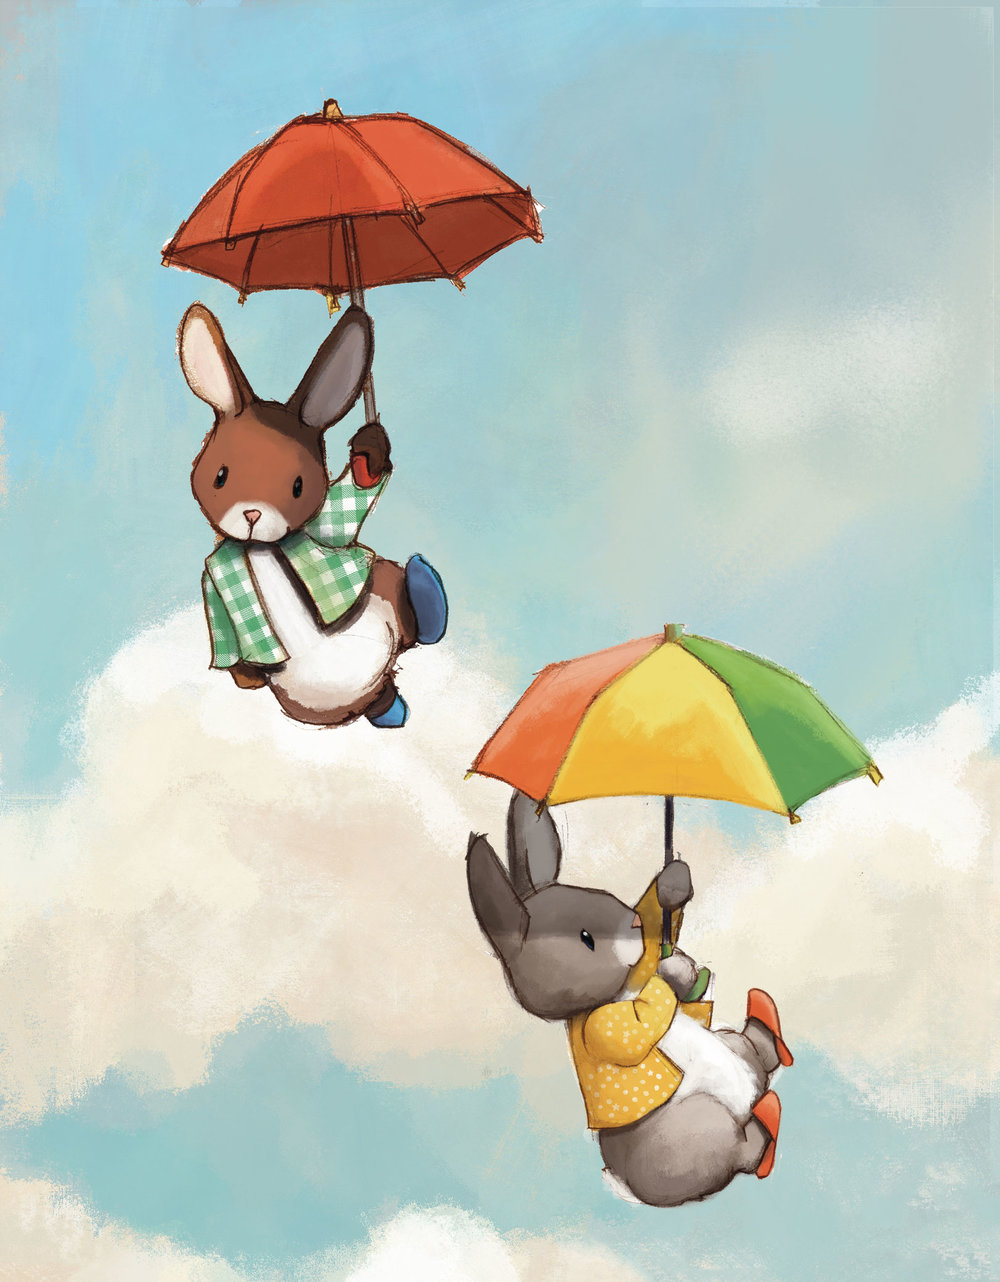 Flying bunnies